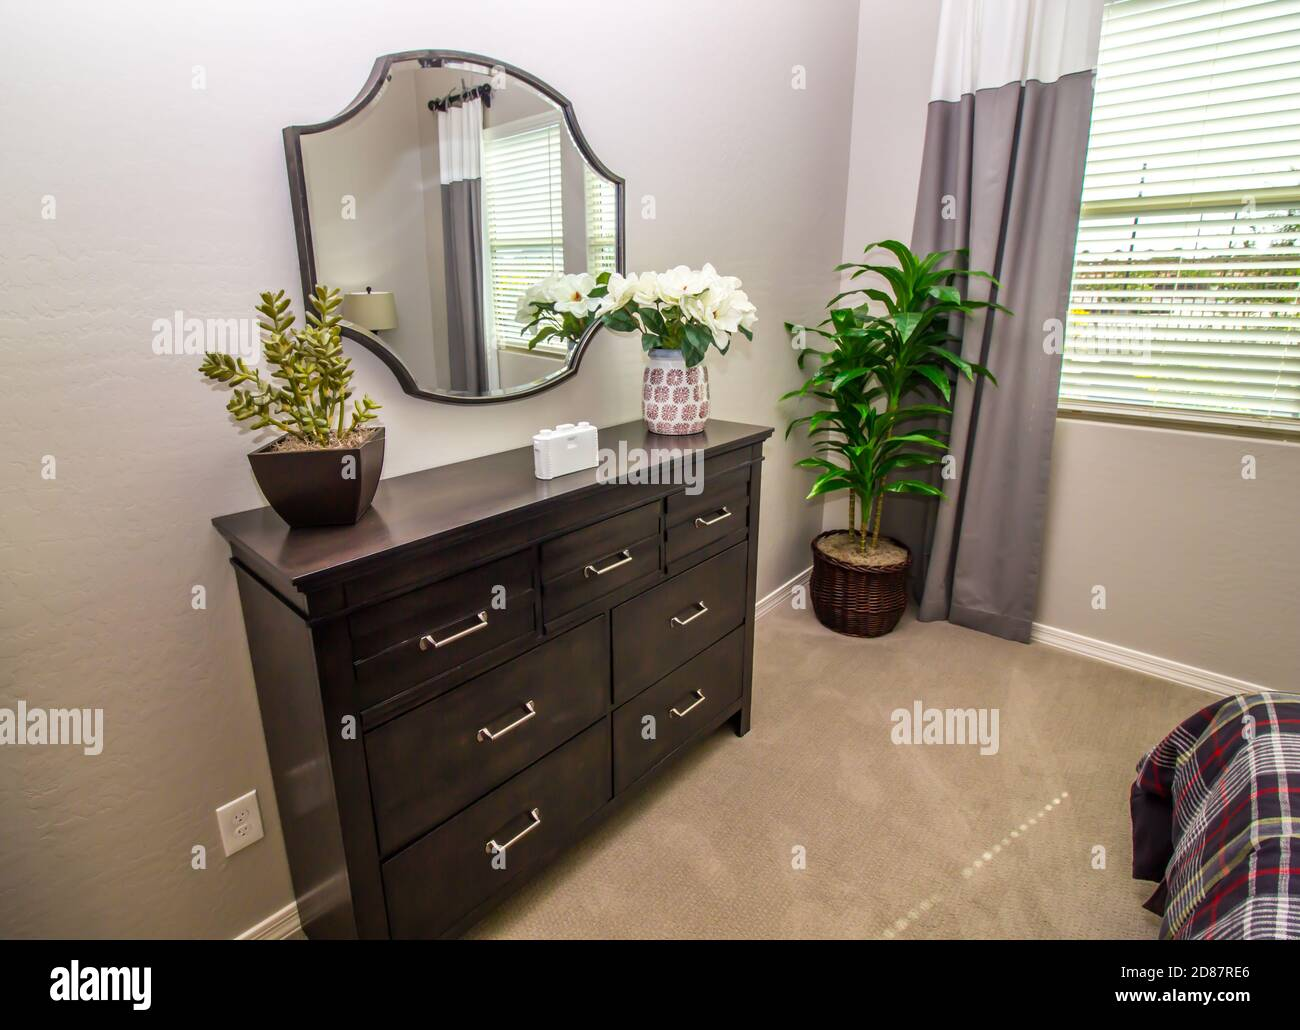 Bedroom With Wall Mirror Wooden Dresser Decorator Items Stock Photo Alamy